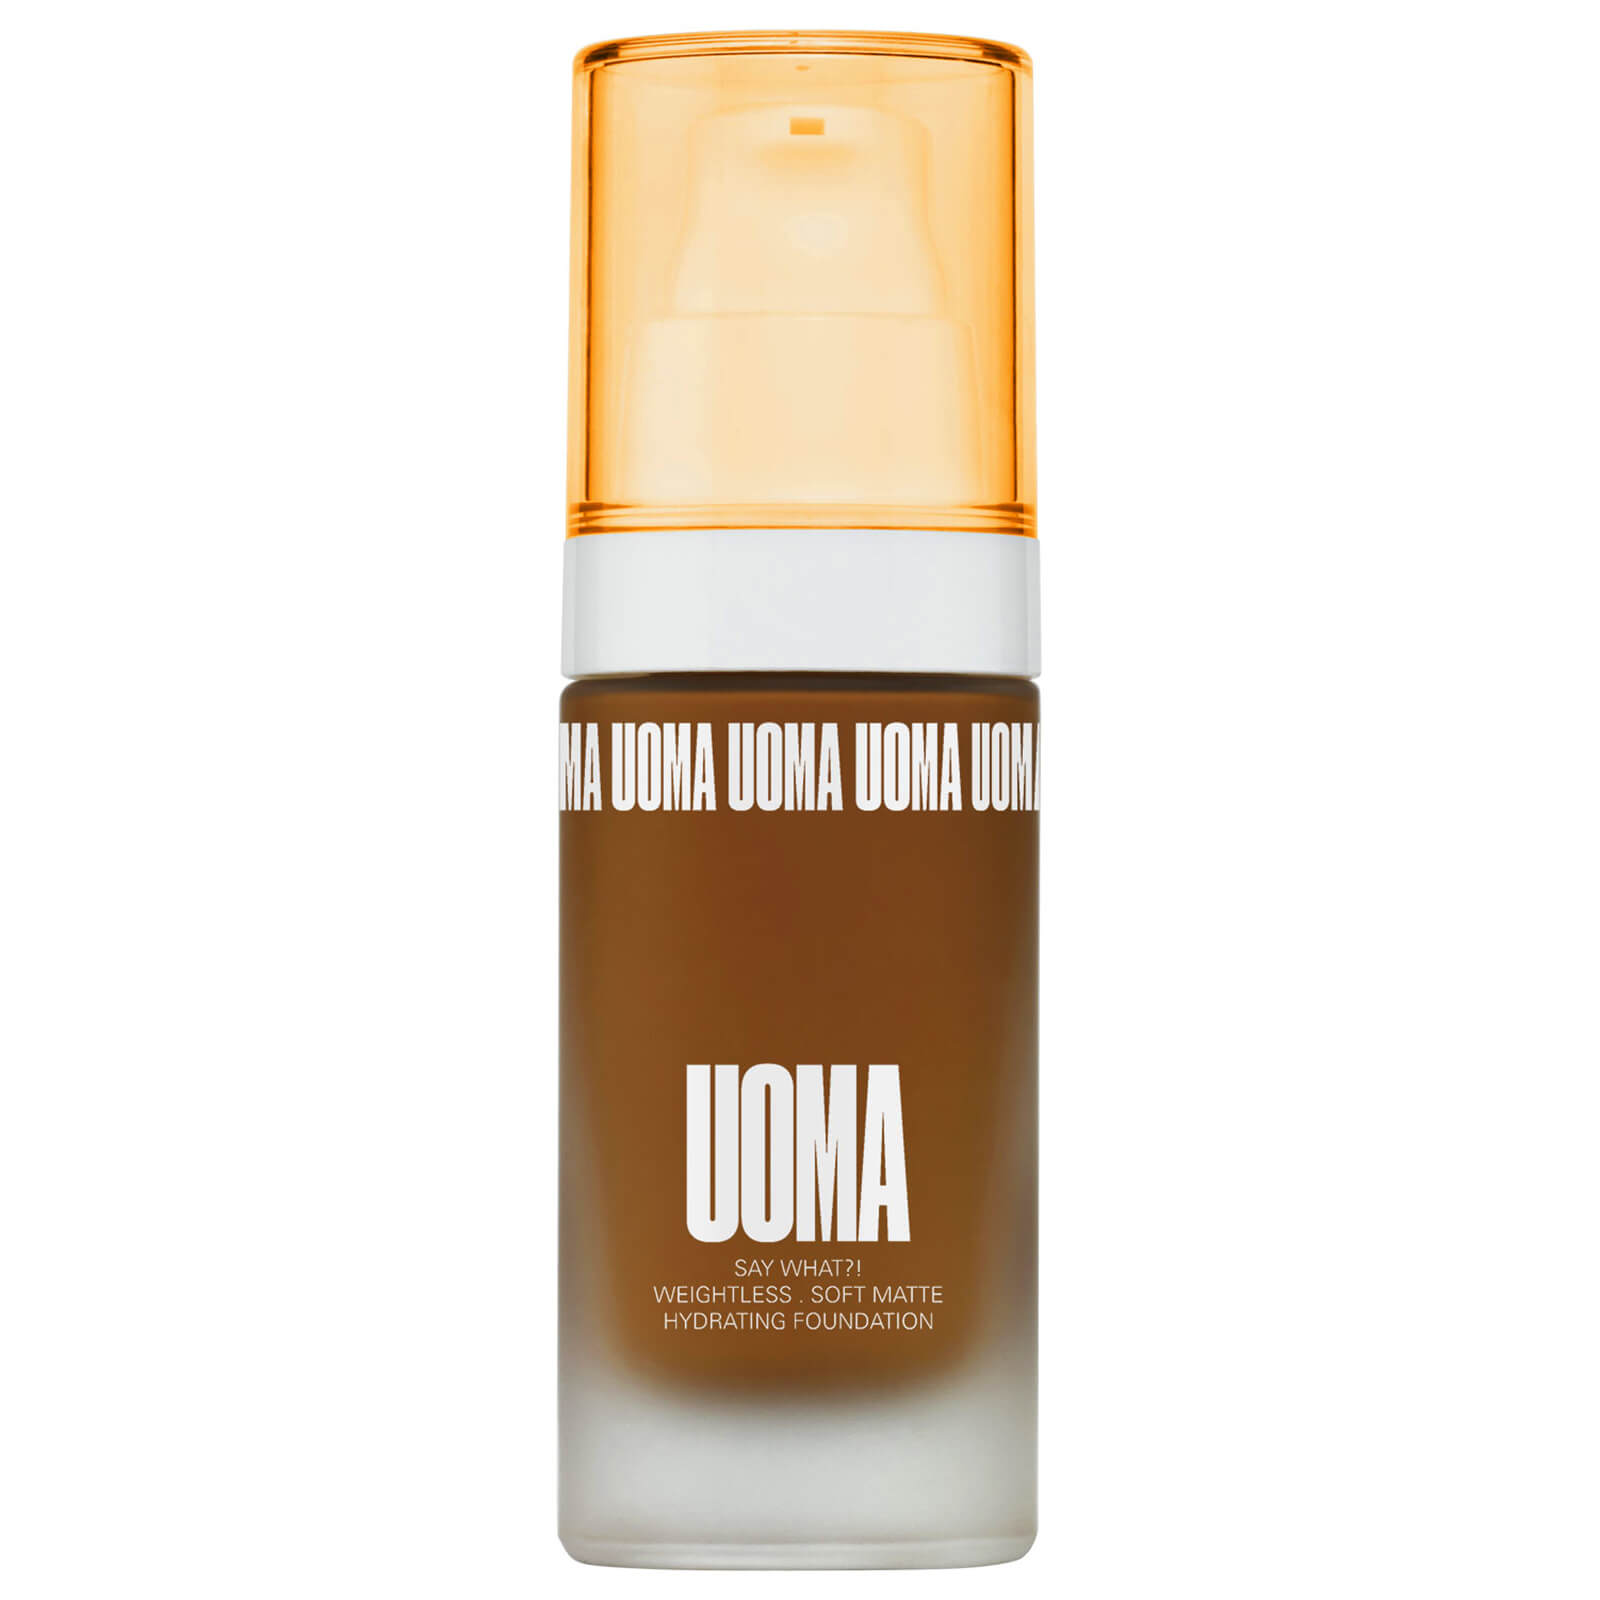 UOMA Beauty Say What Foundation 30ml (Various Shades) - Brown Sugar T4W